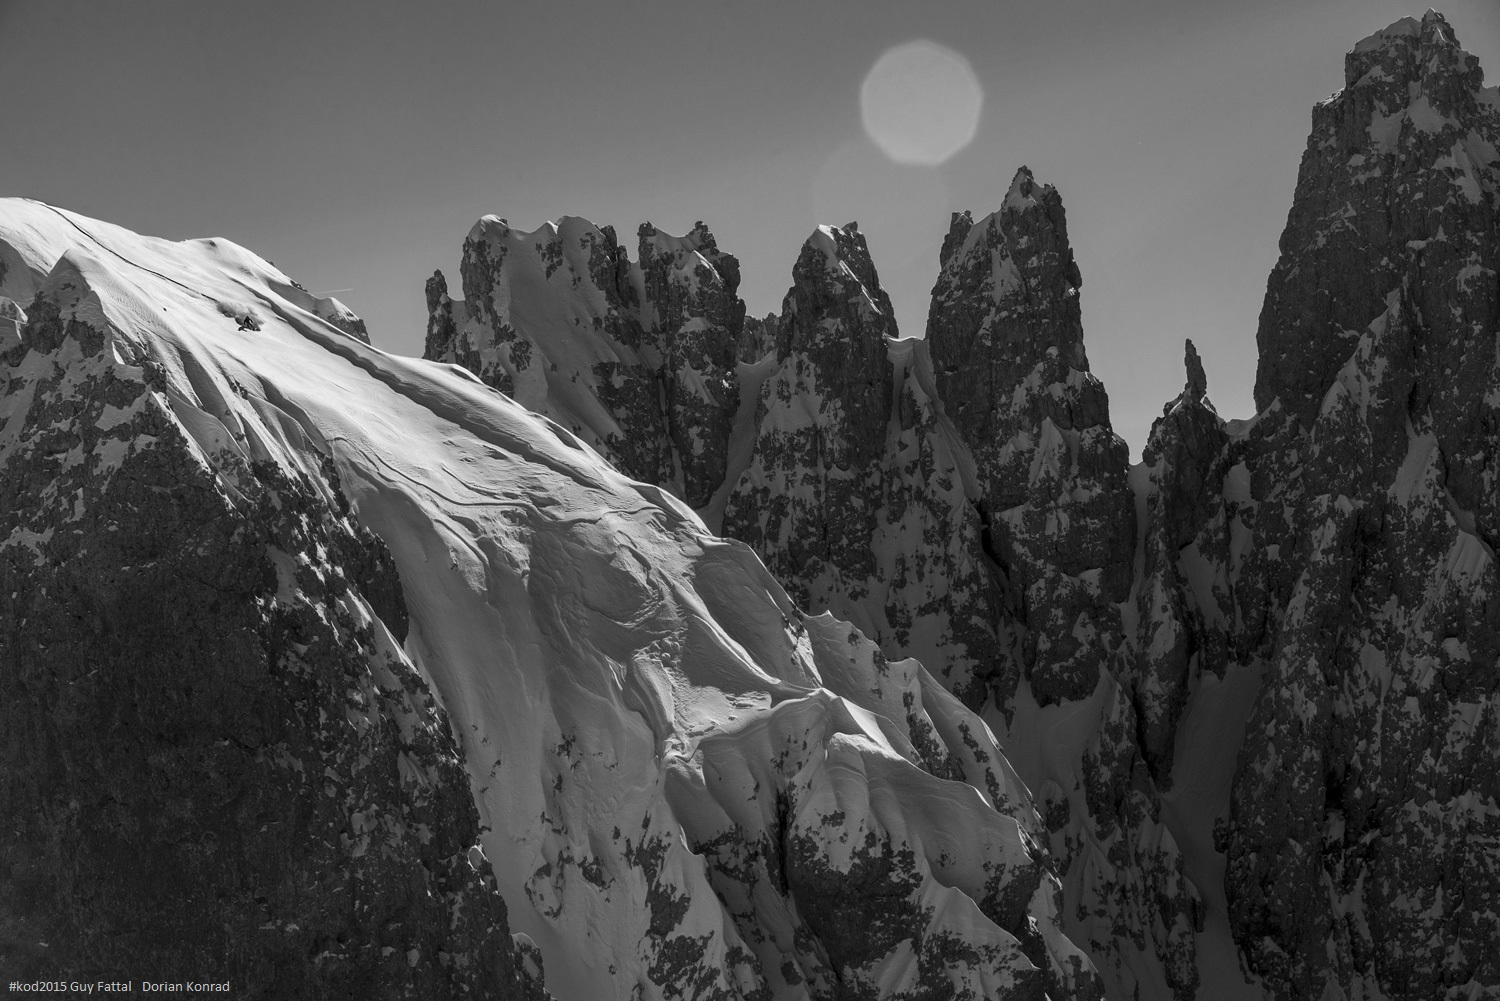 Arc'teryx King of Dolomites 2015: i vincitori